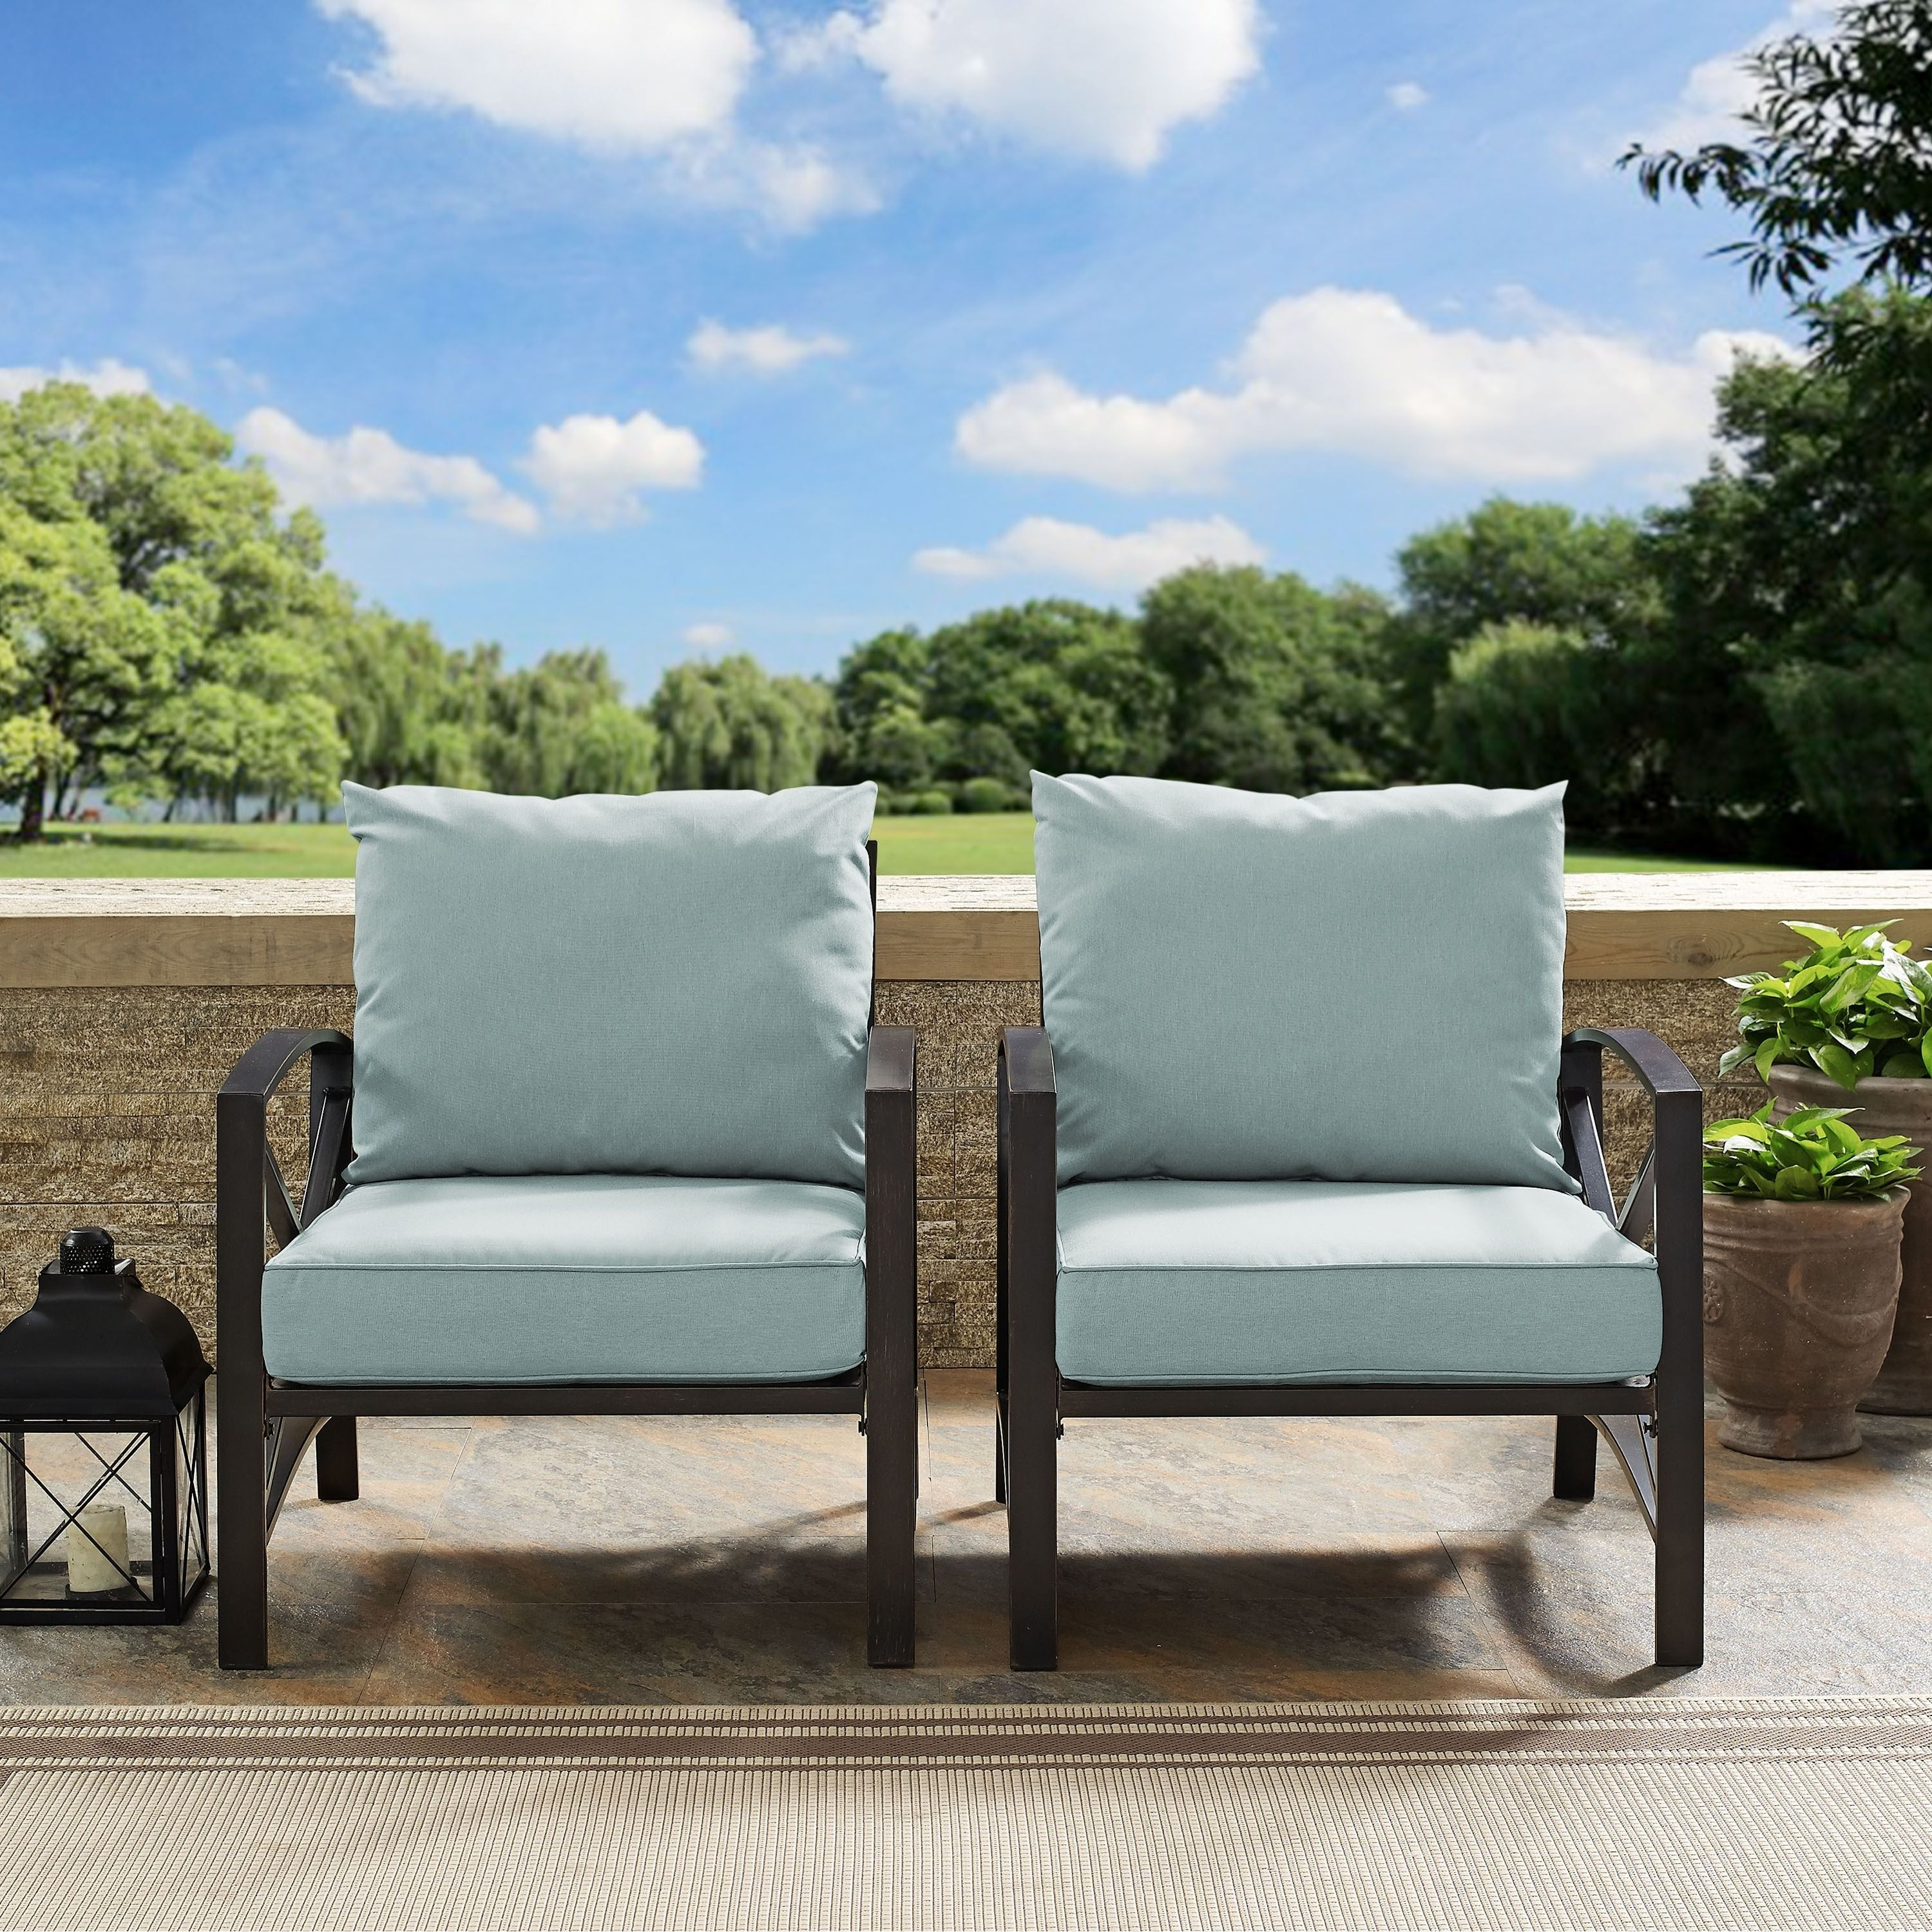 Crosley Kaplan 2 Pc Outdoor Seating Set With Mist Cushion Intended For Most Up To Date Englewood Loveseats With Cushions (View 3 of 20)